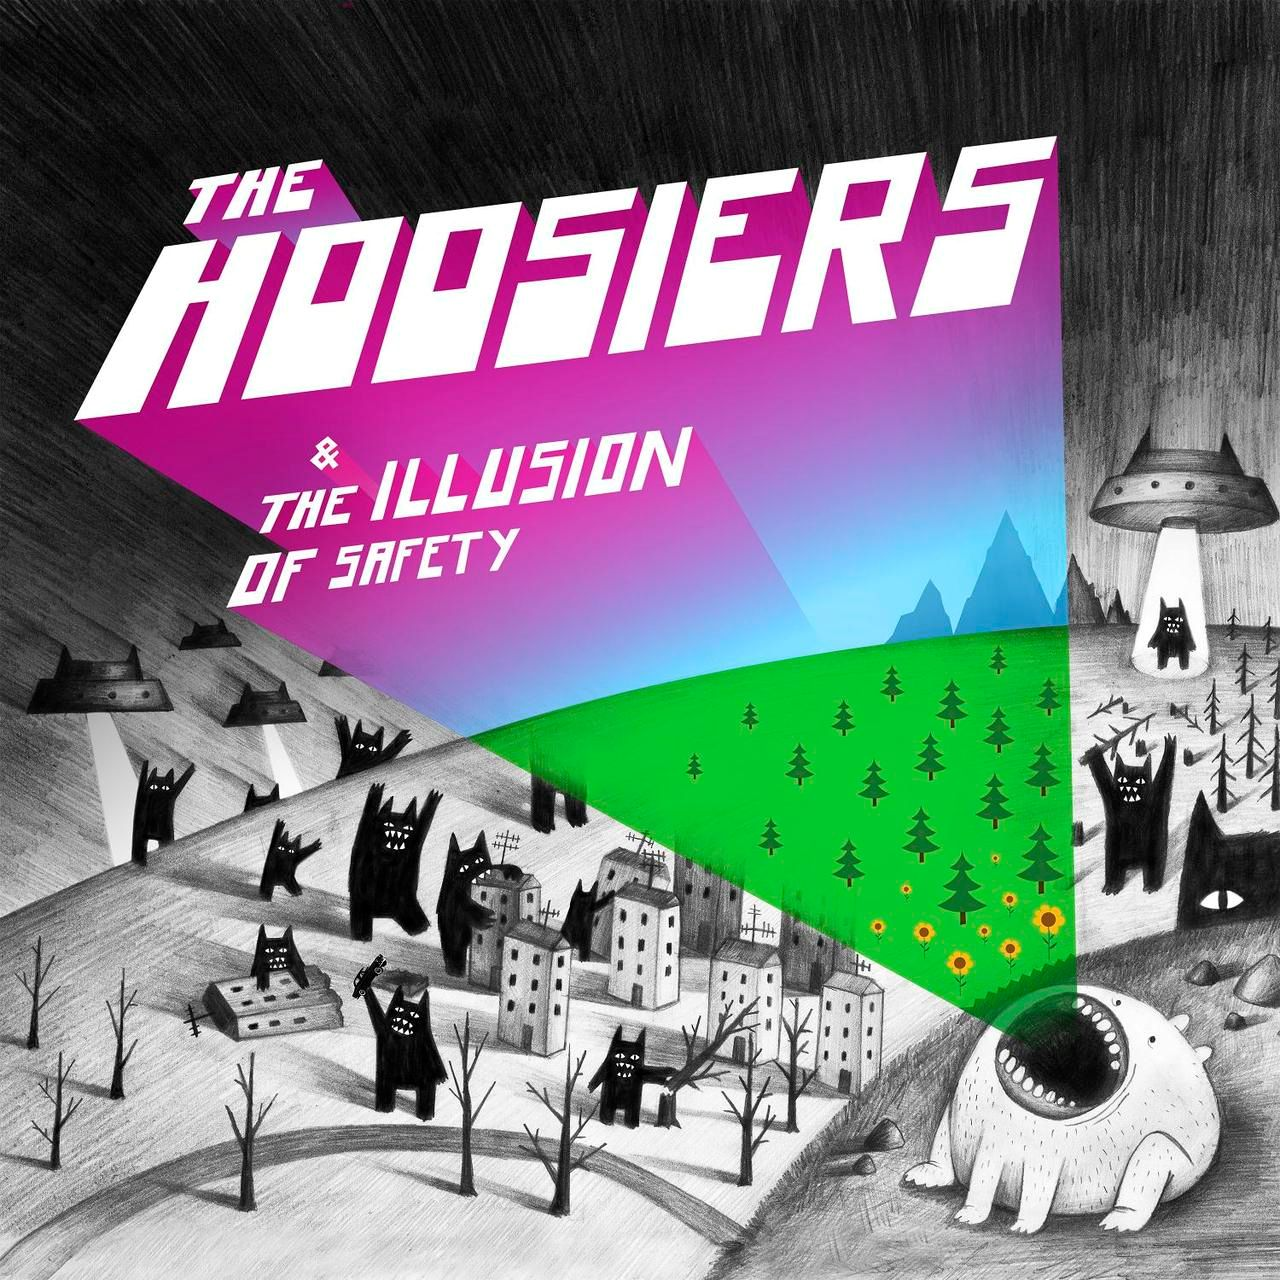 Hoosiers - The Illusion Of Safety album cover